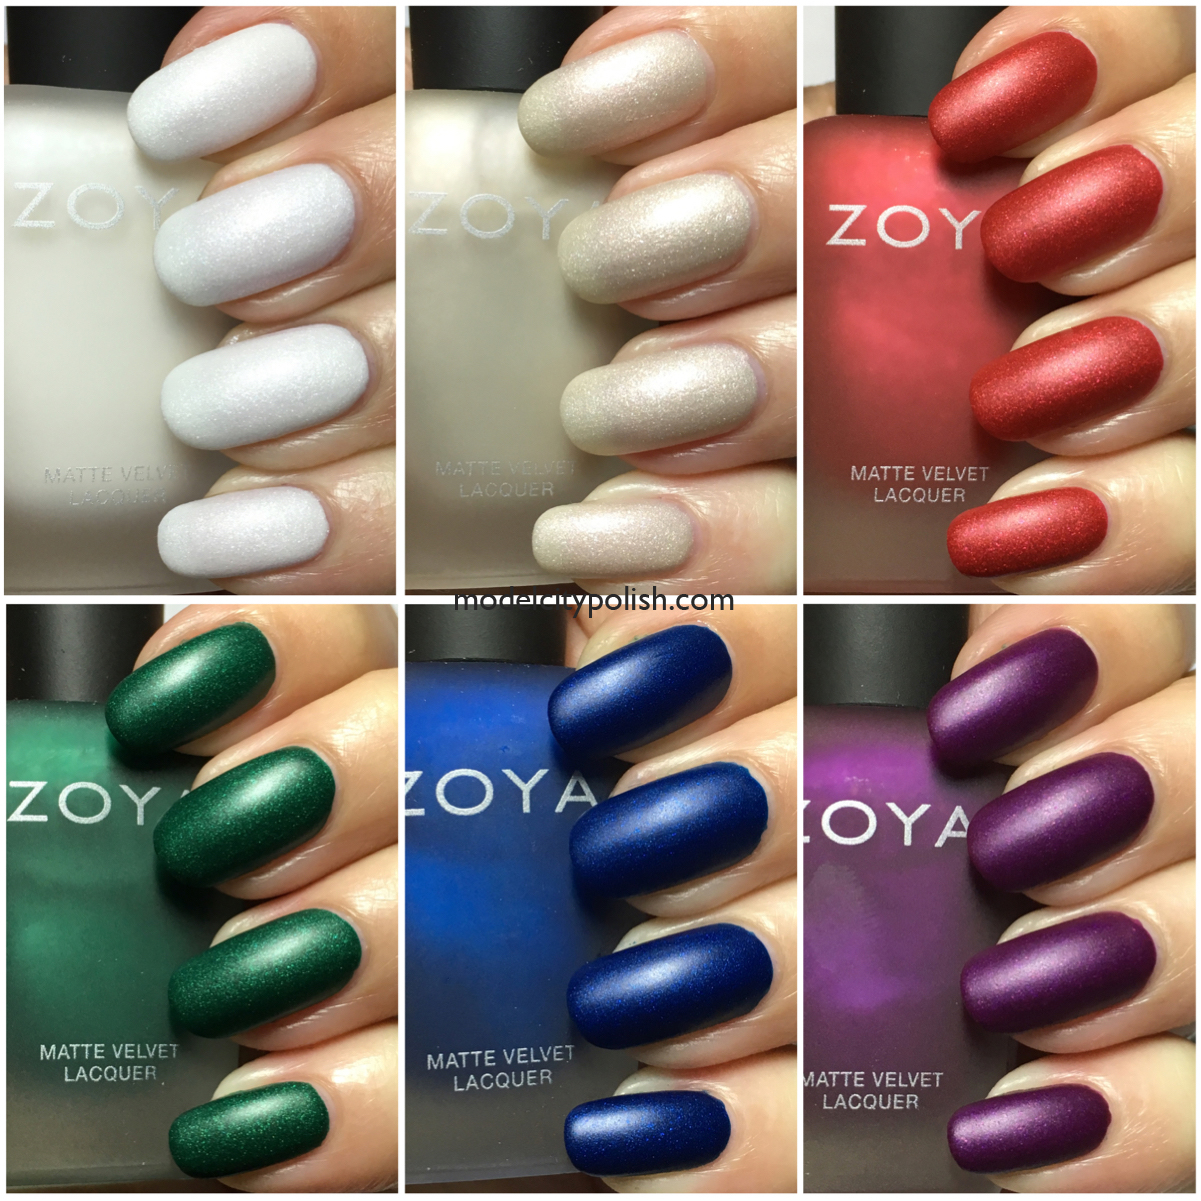 Matte Velvet Winter Holiday 2015 By Zoya Nail Polish